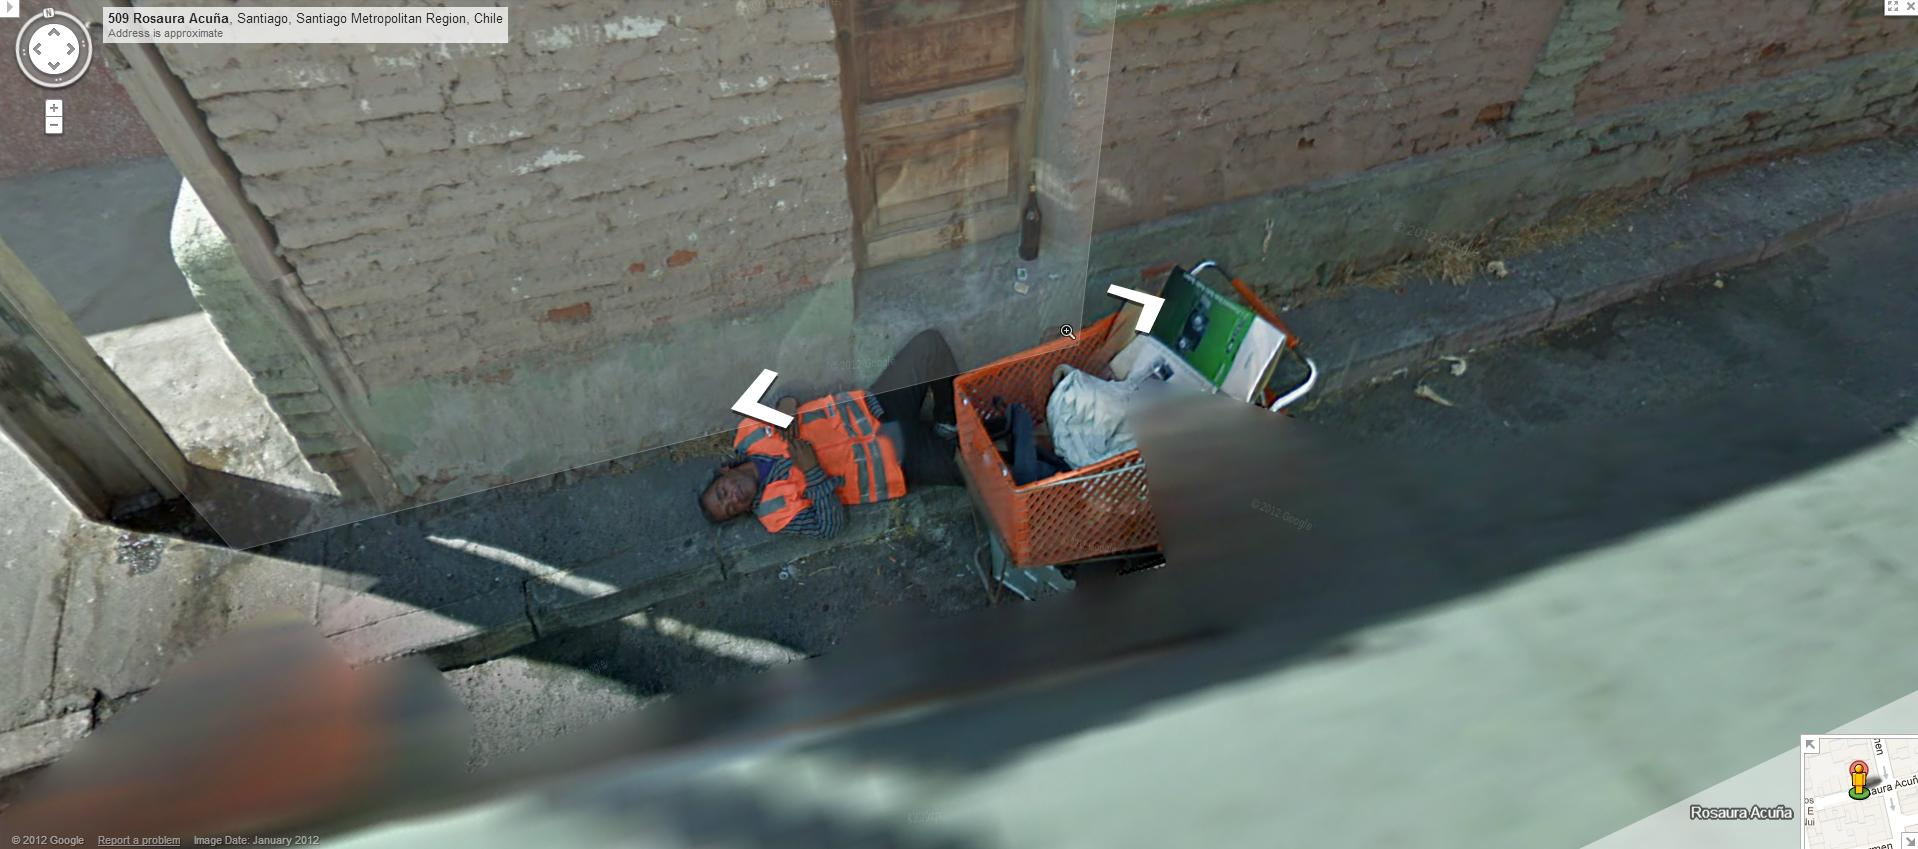 down-and-out-in-santiago-chile-google-maps-street-view